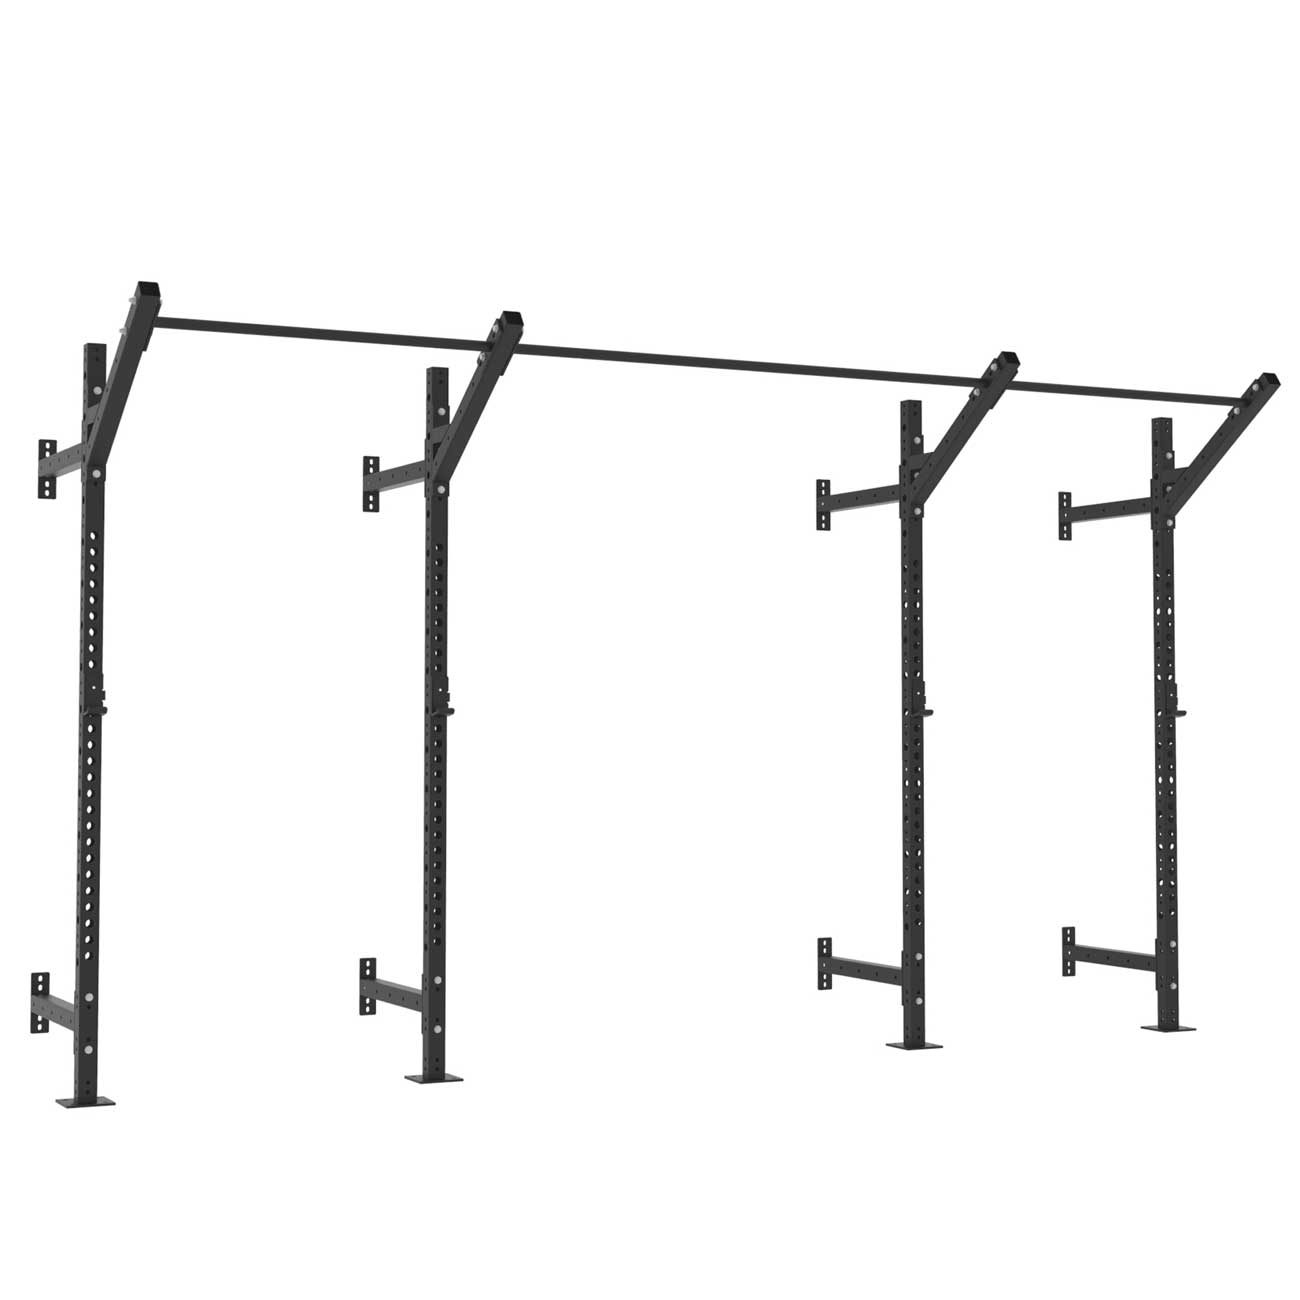 14ft XSR Wall Mounted Pull-up Rig